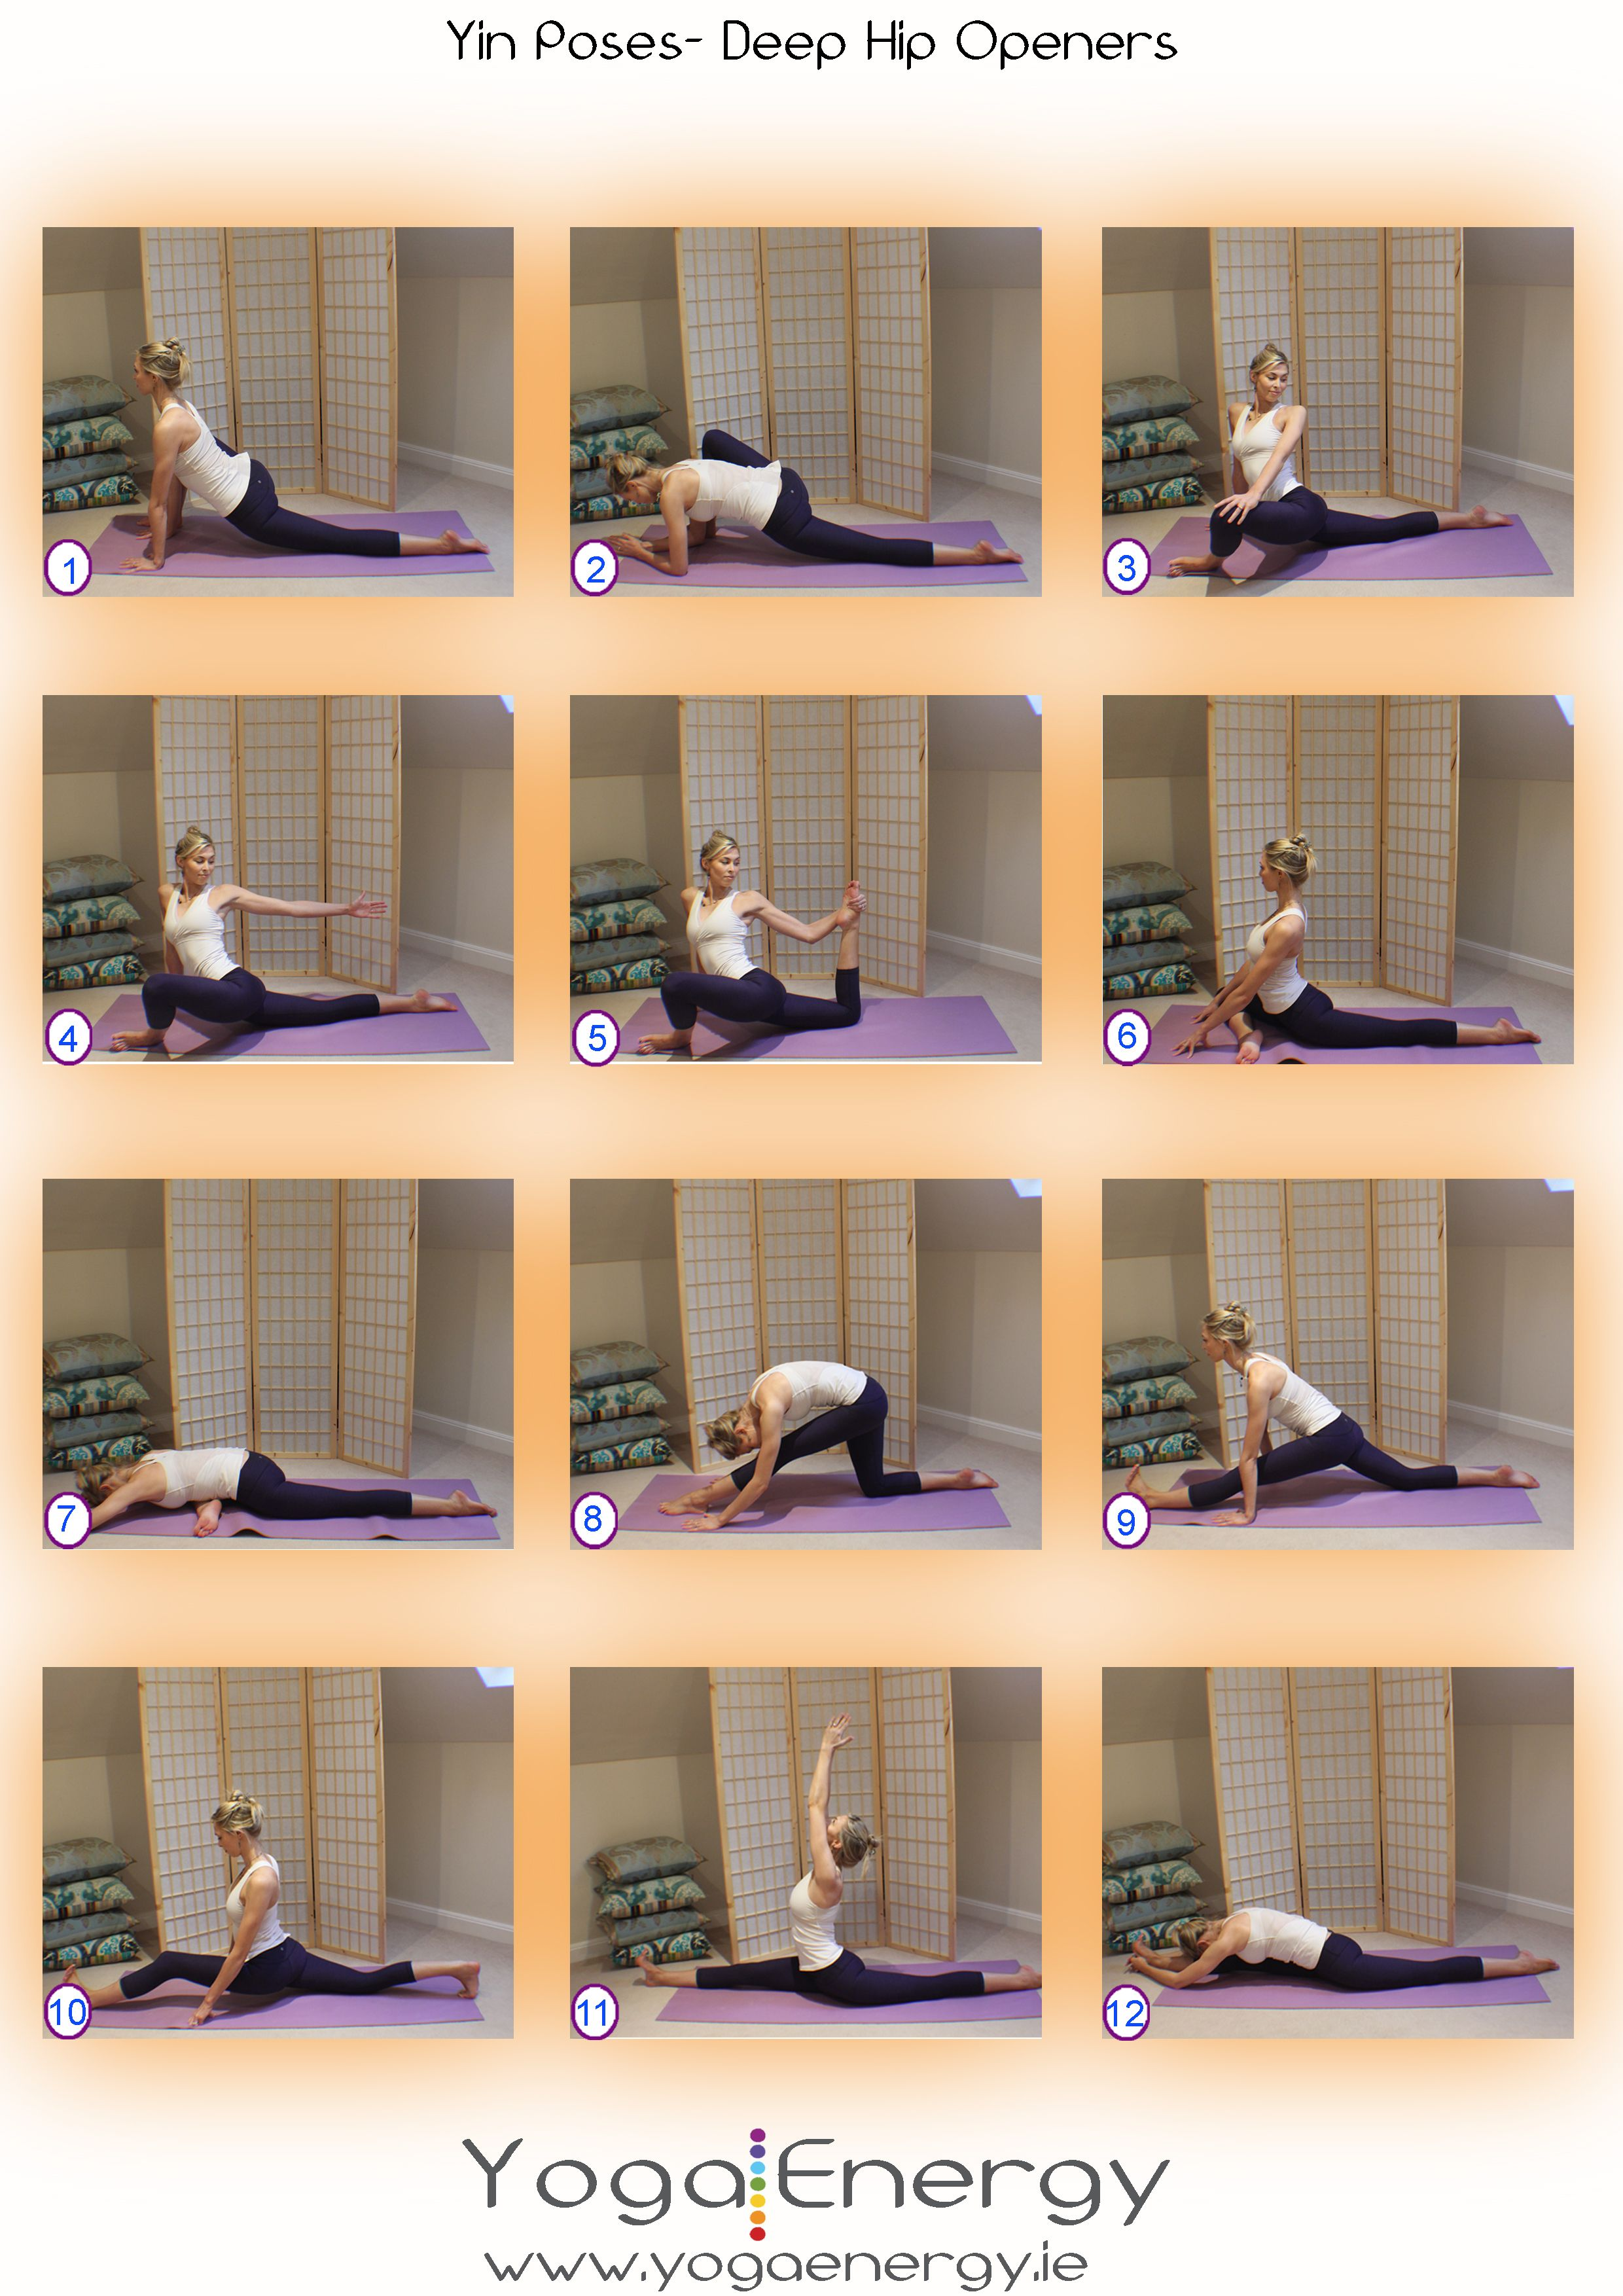 21++ What is yin yoga poses ideas in 2021